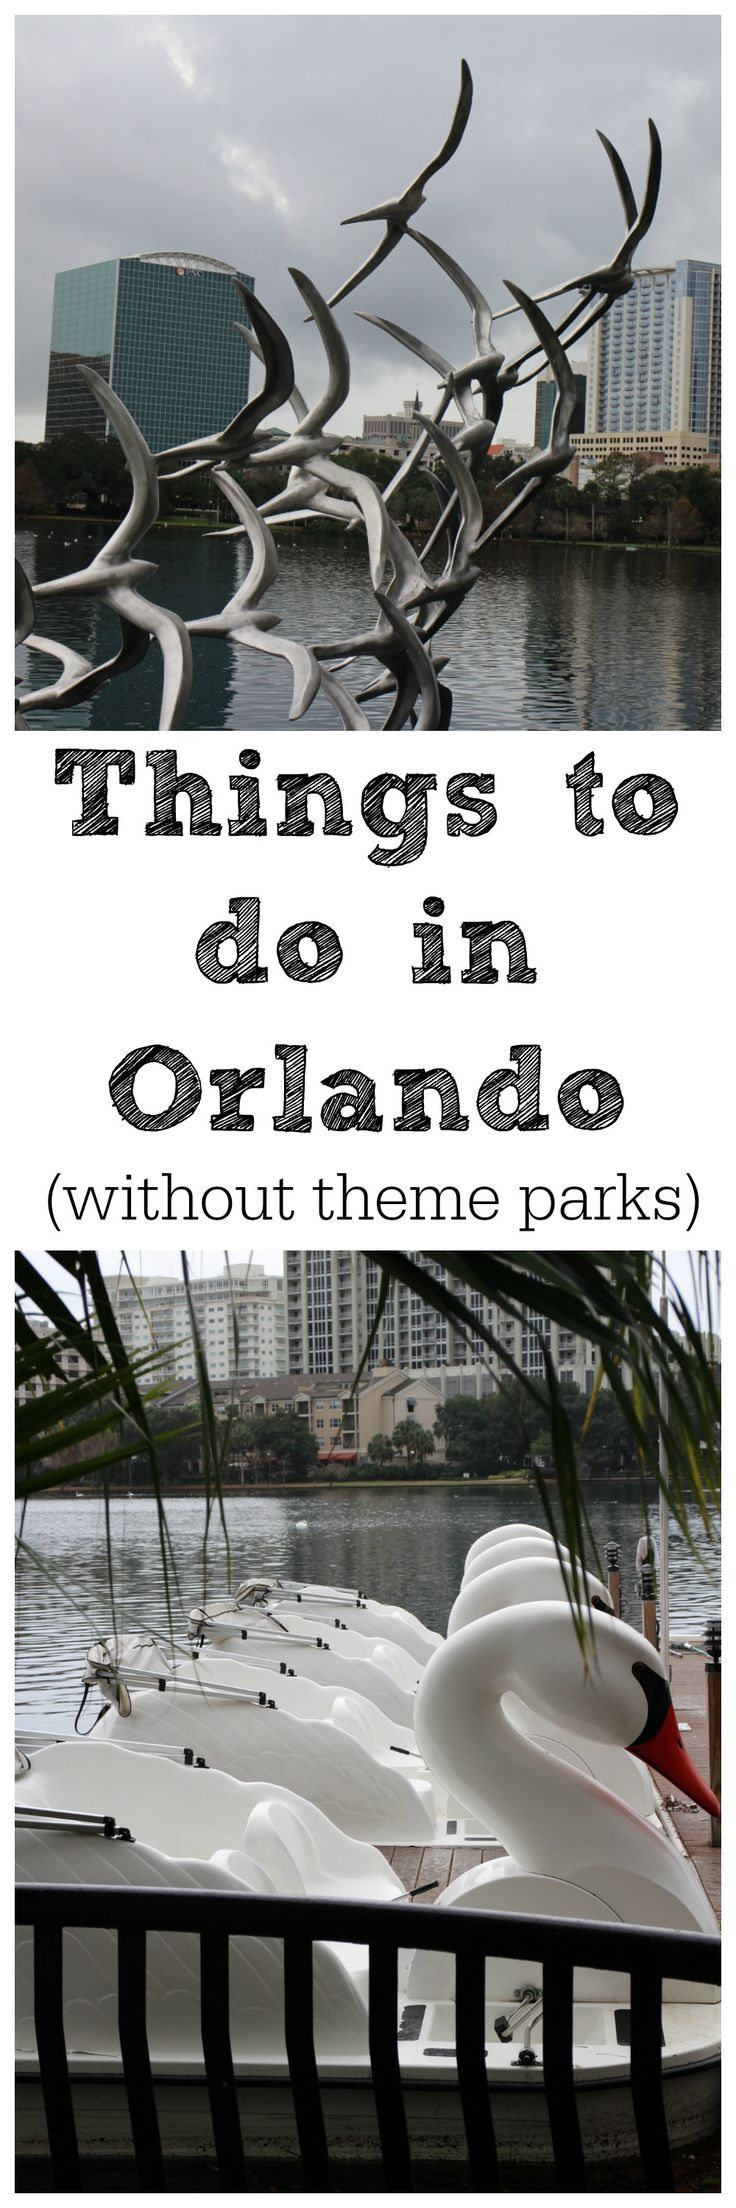 Things to do in Orlando, Florida (that don't include theme parks): Lakes, gardens, stores, restaurants & more | cadryskitchen.com